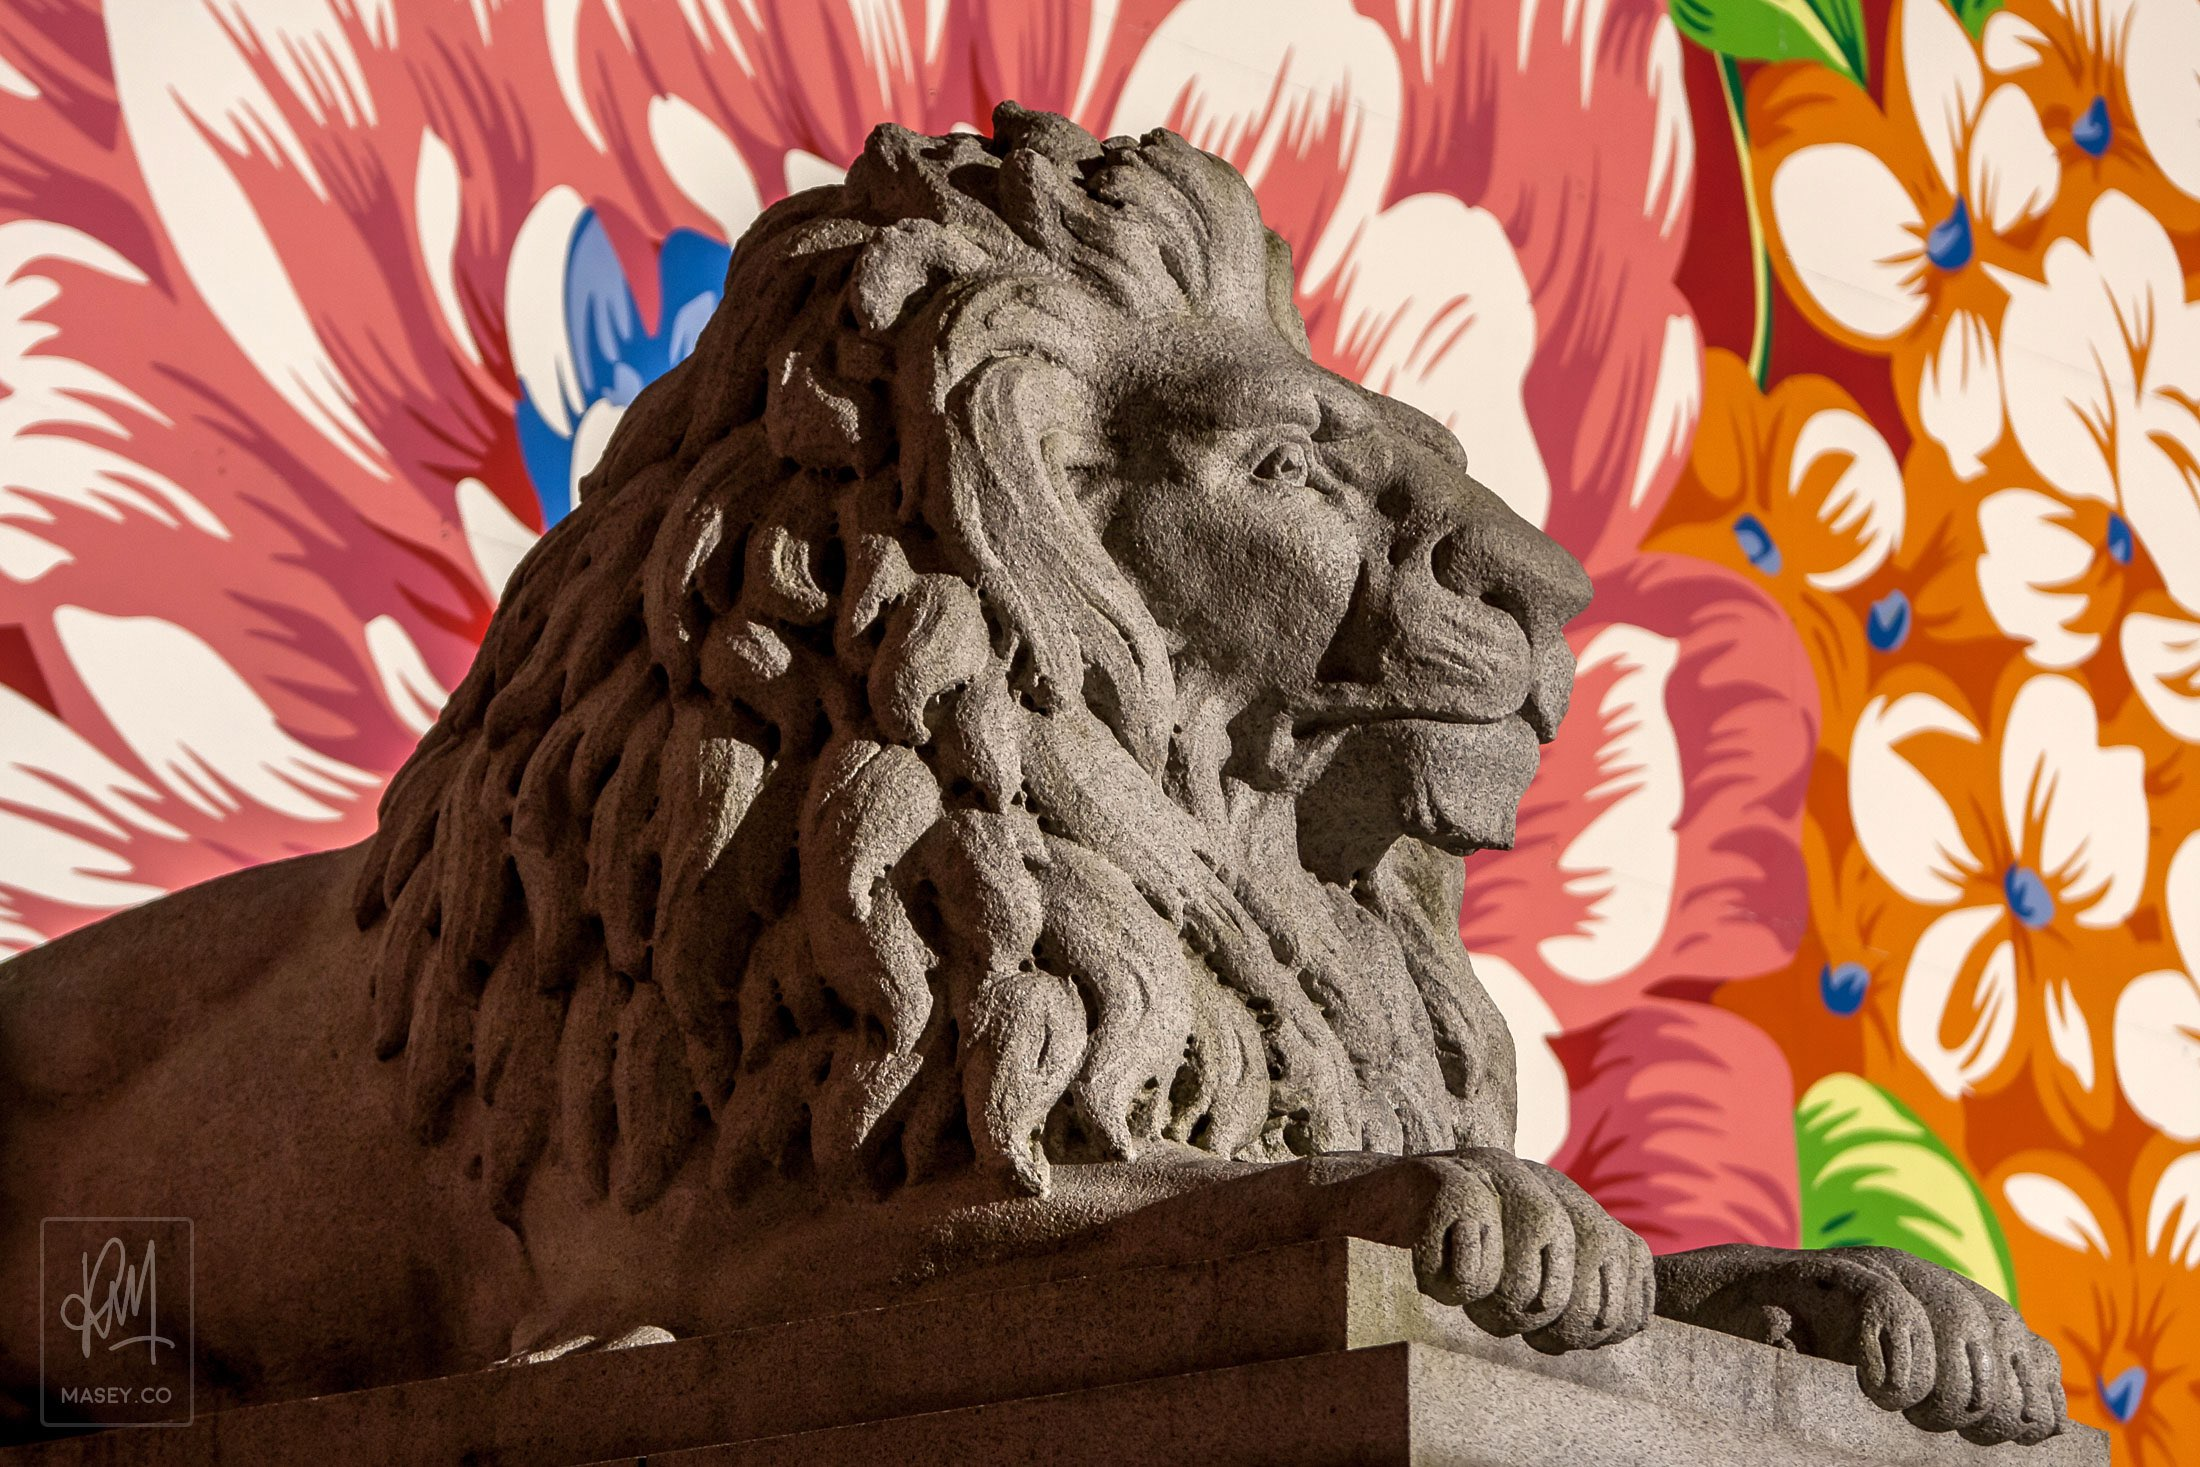 With their new colourful floral background, the Art Gallery stone Lions don't seem so imposing anymore.